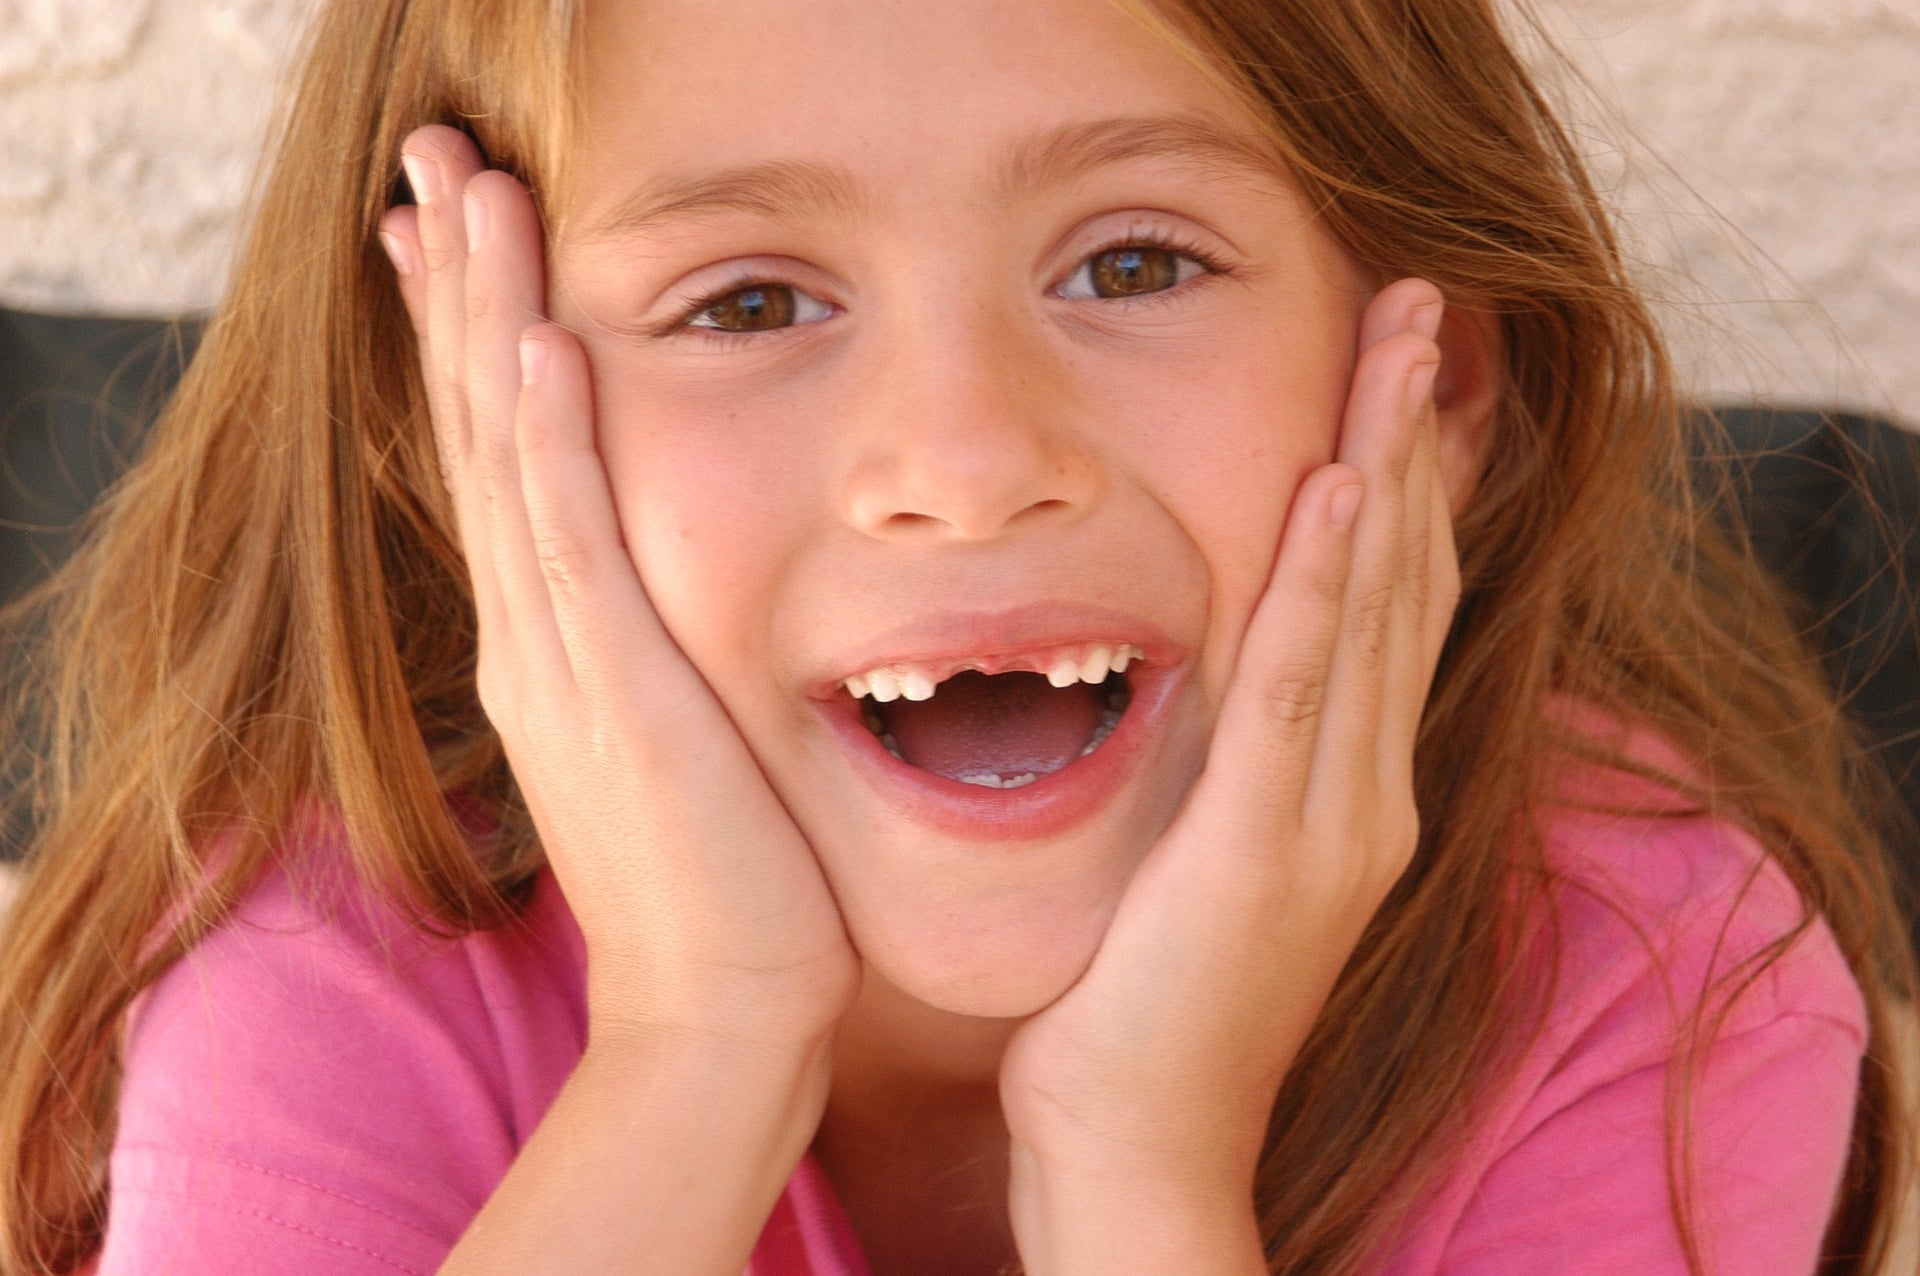 girl with two front teeth missing wearing pink shirt - poetry